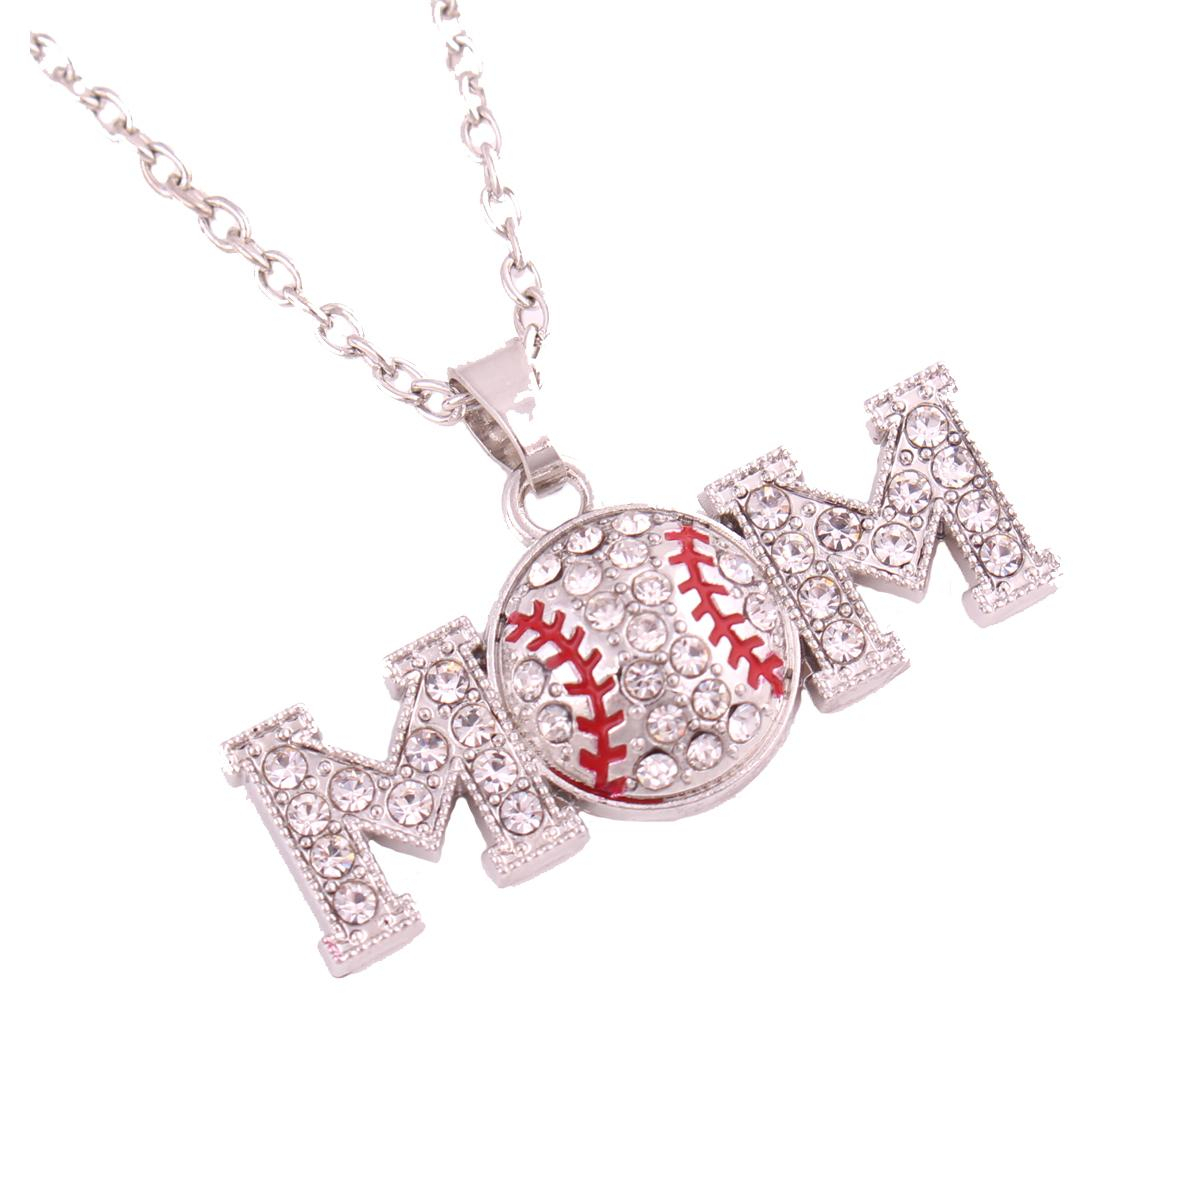 Best Sale Sporty Necklace For Unisex Mom Letter Charm Baseball Pattern With Sparkling Crystals Link Chain Necklace Throughout Most Up To Date Sparkling Pattern Necklaces (View 3 of 25)